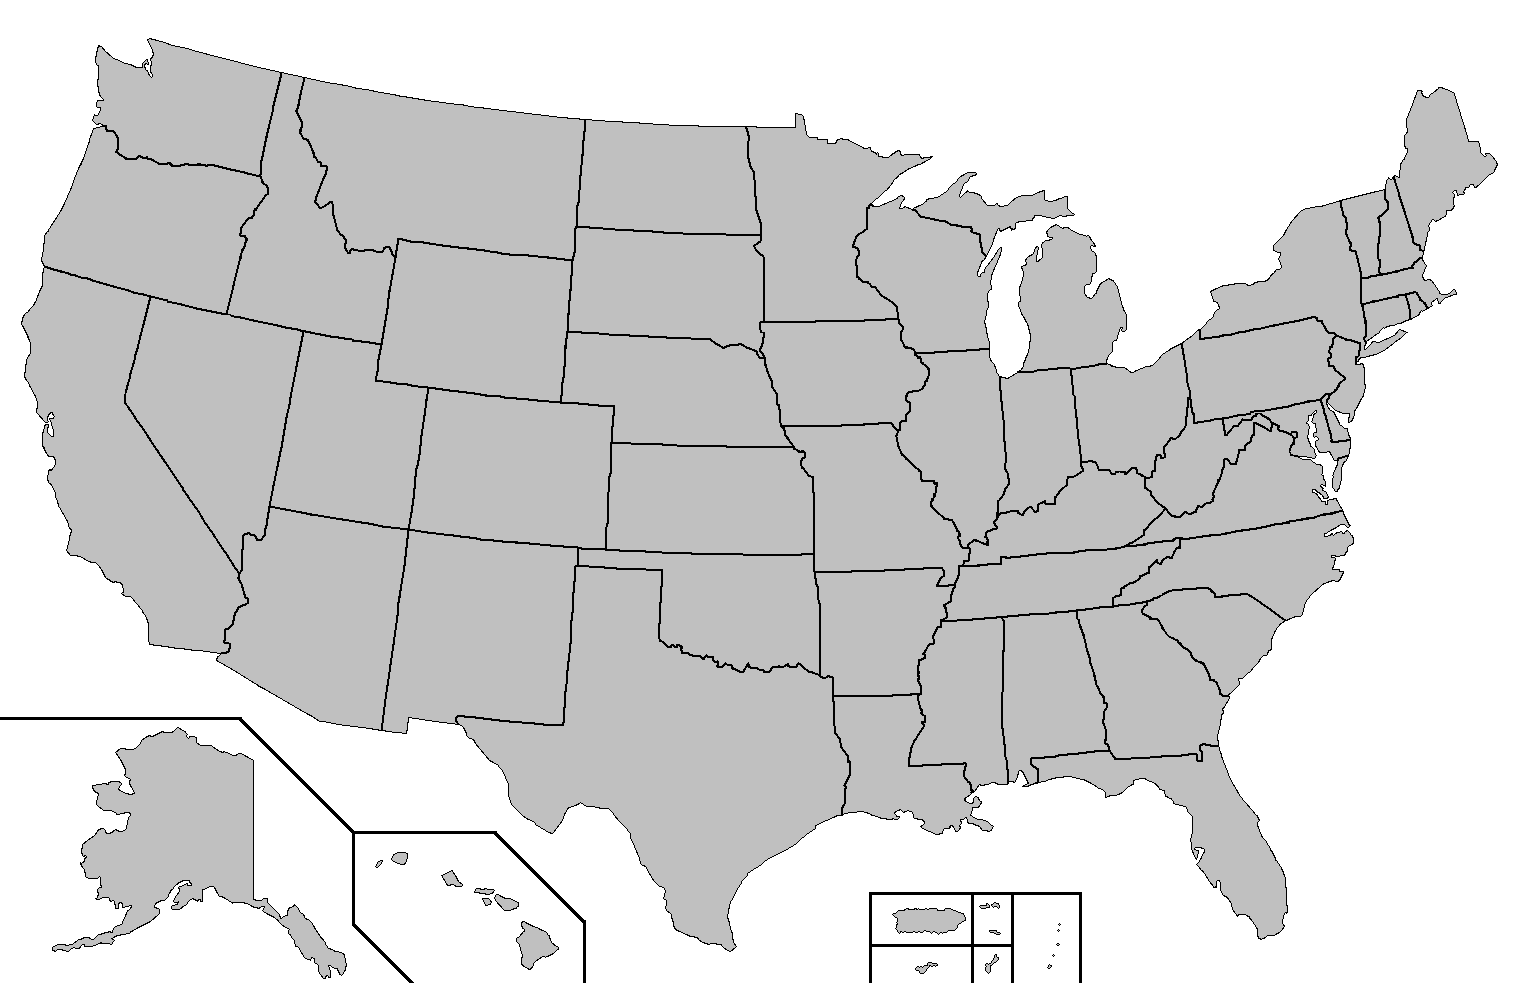 File:Blank map of the United States.PNG.